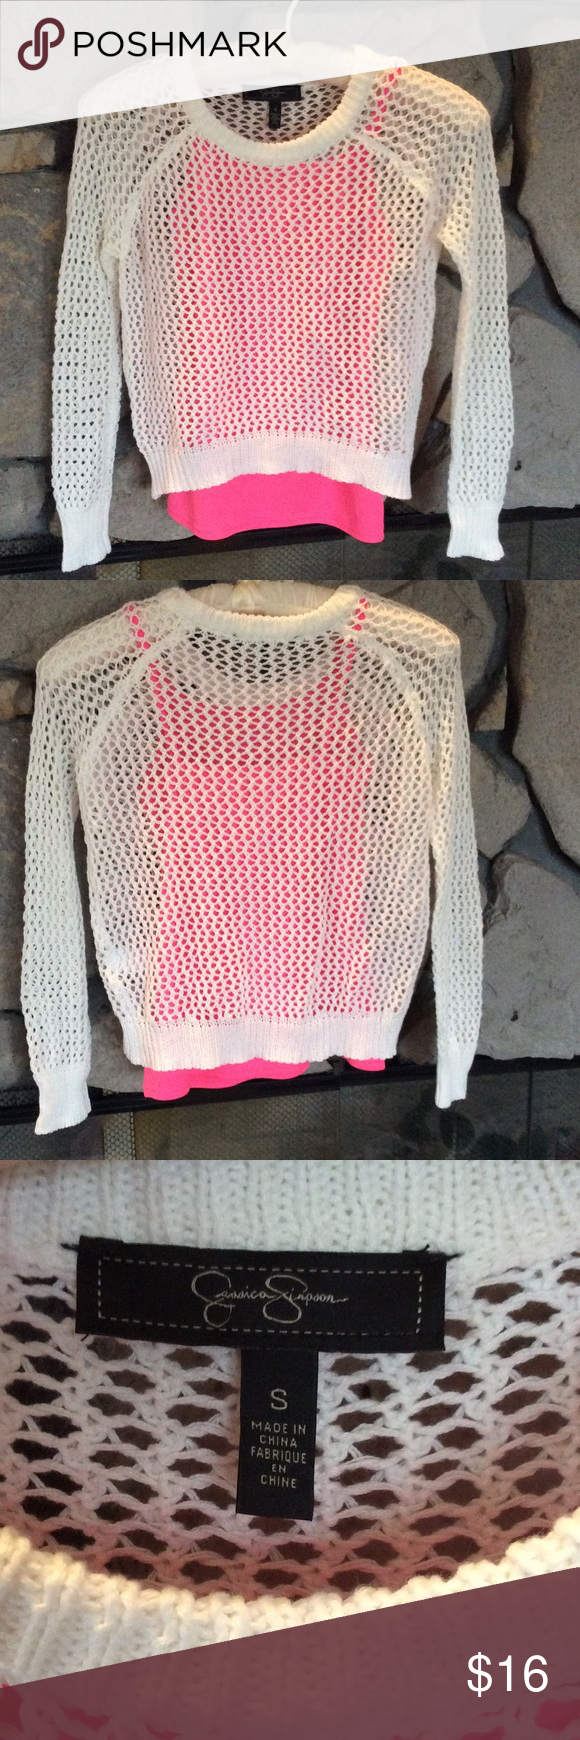 Layered white netted sweater w/pink tank White long sleeve netted sweater has attached hot pink tank underneath.  Hardly worn, great condition. Jessica Simpson Sweaters Crew & Scoop Necks